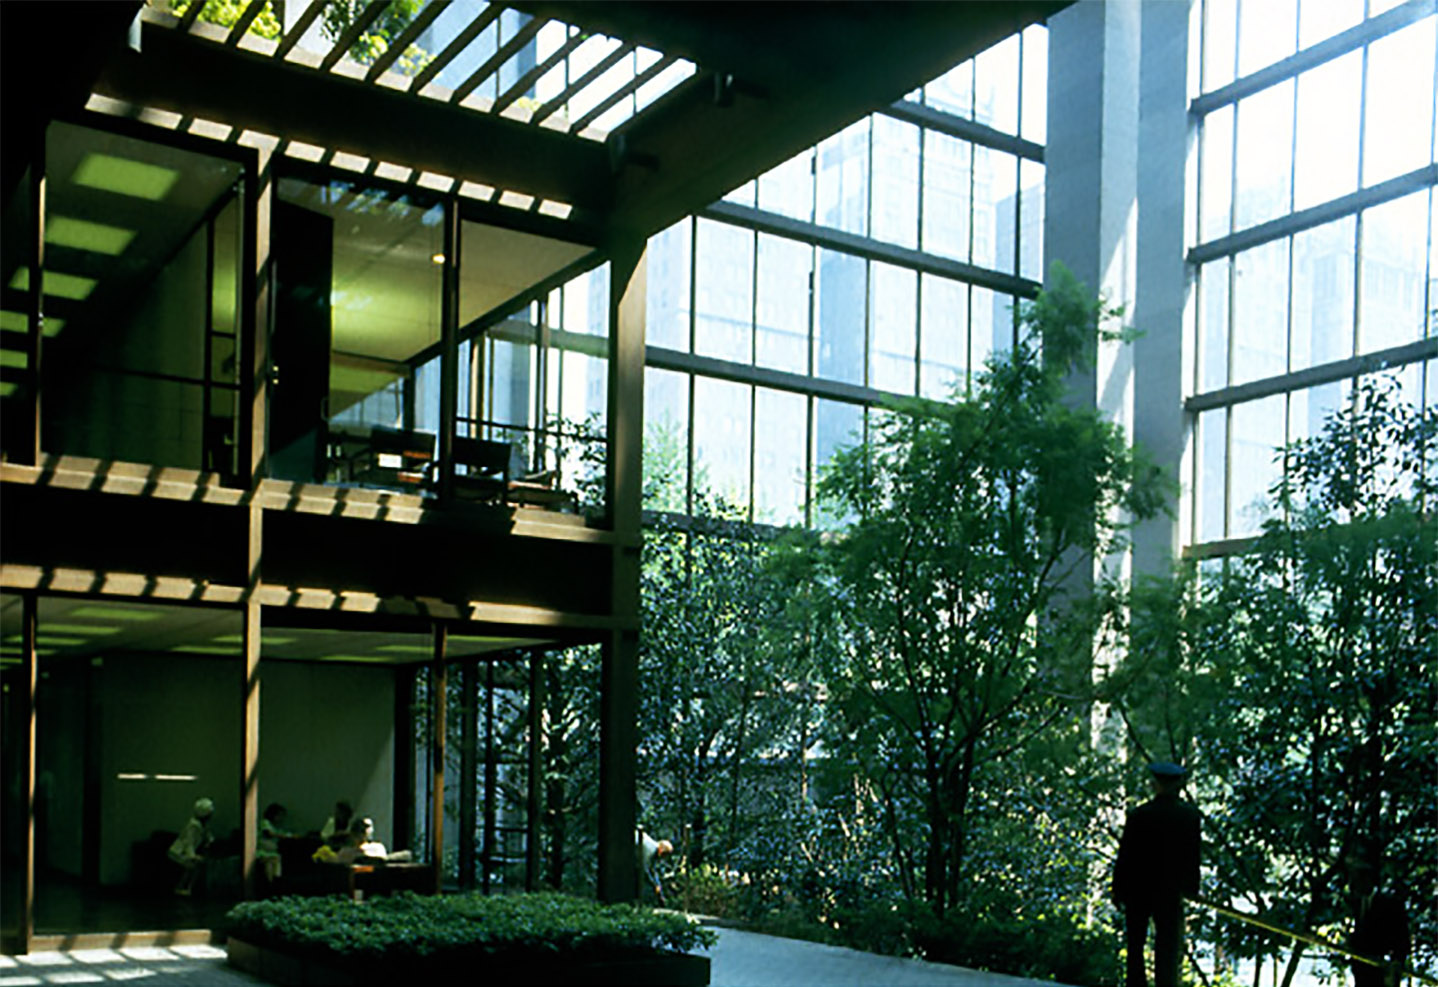 Ford Foundation Headquarters (interior)